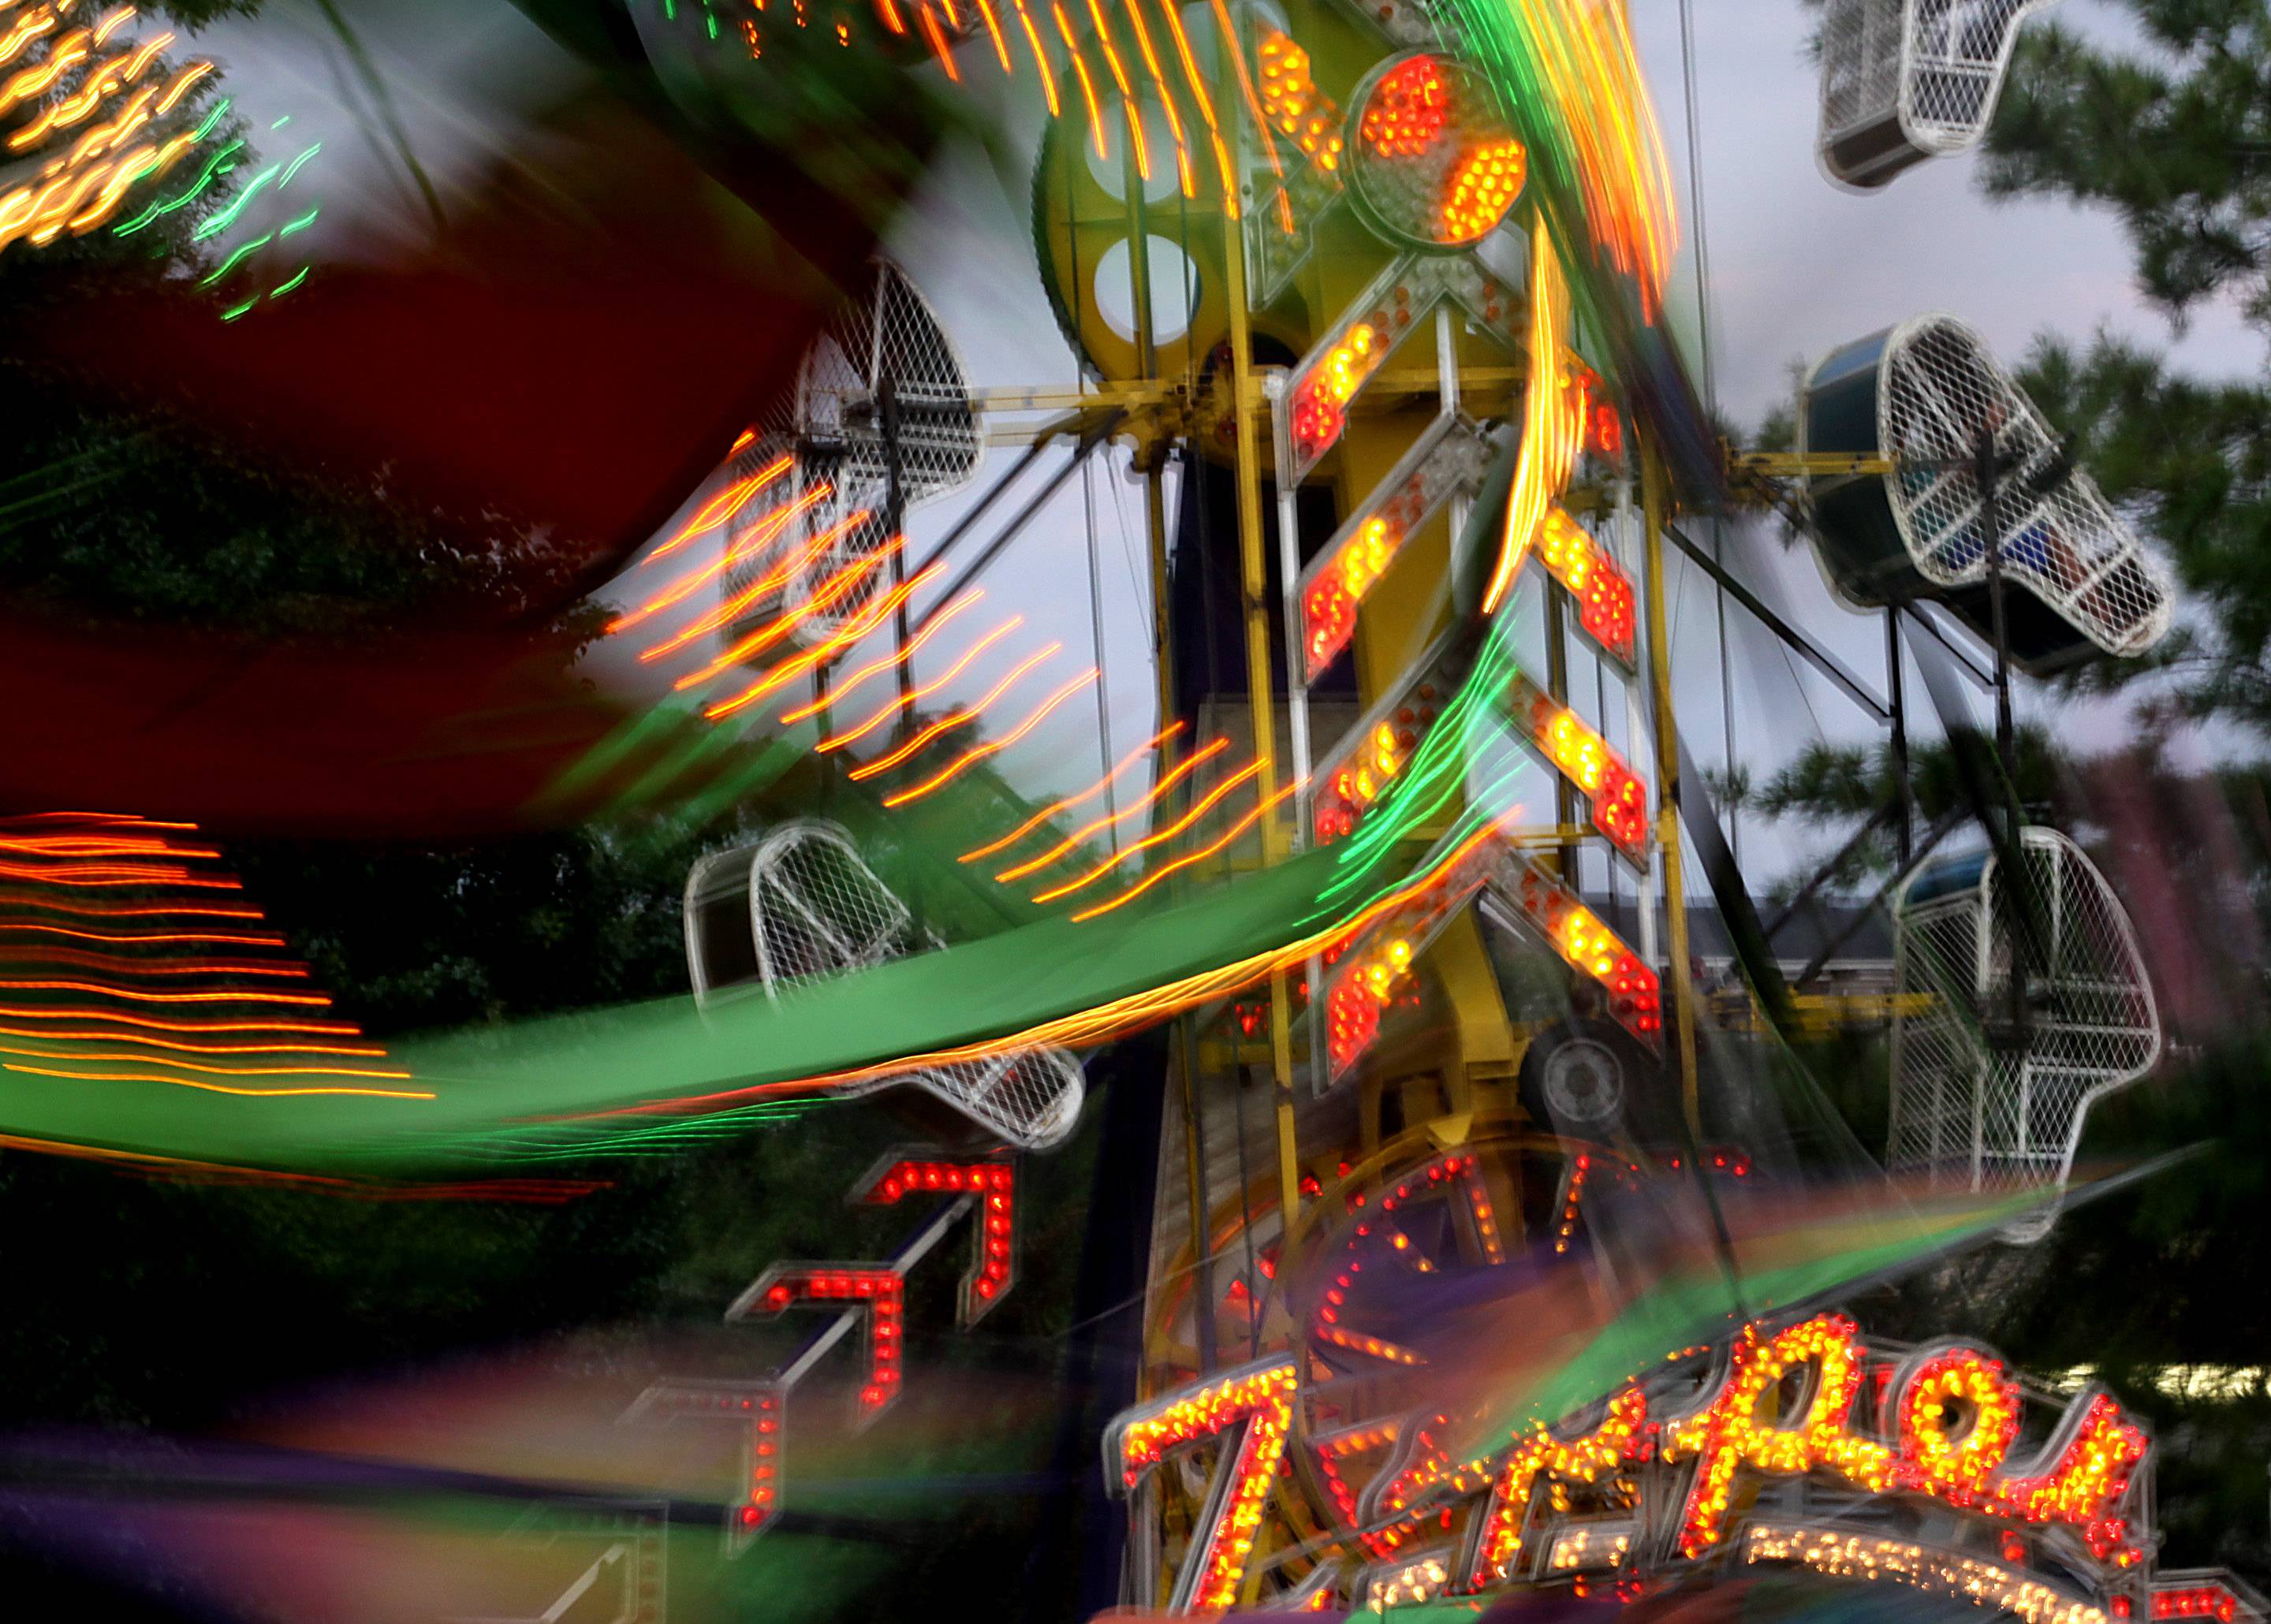 The Zipper amusement ride and others go into motion during South Elgin Riverfest Express at Panton Mill Park.